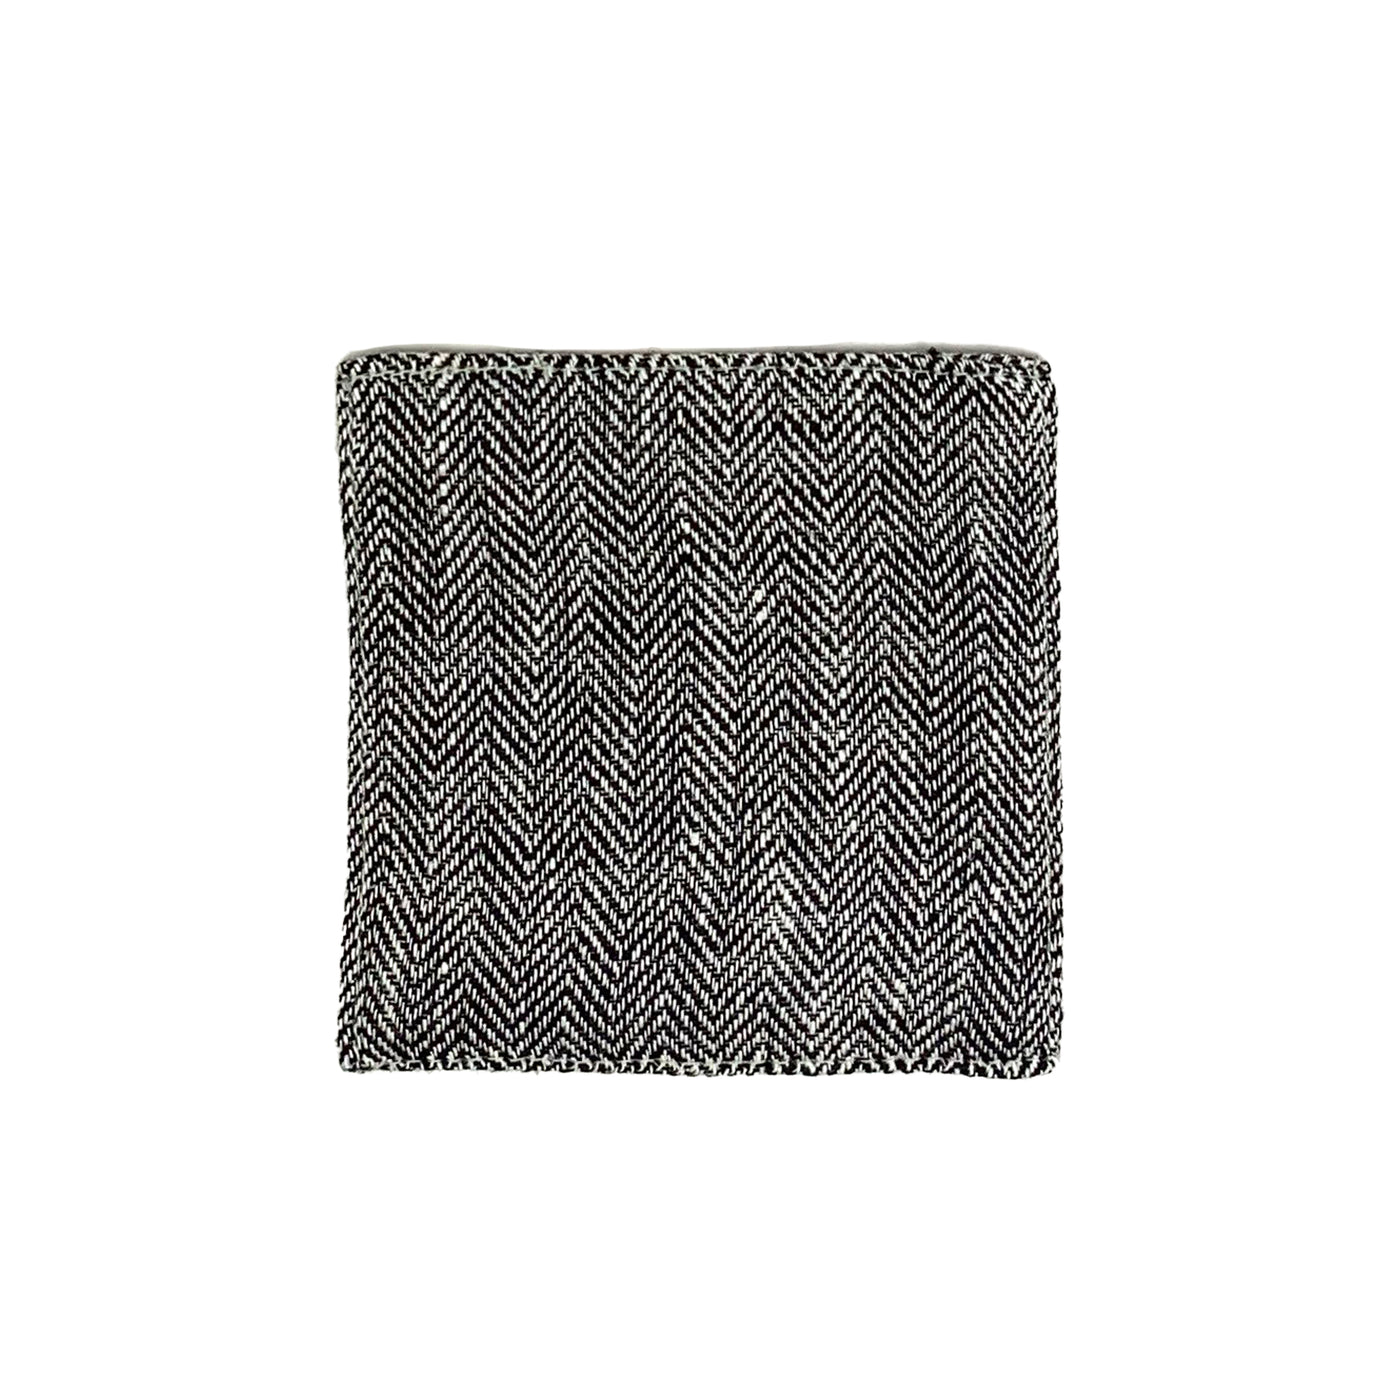 Linen Coaster - Gray Herringbone